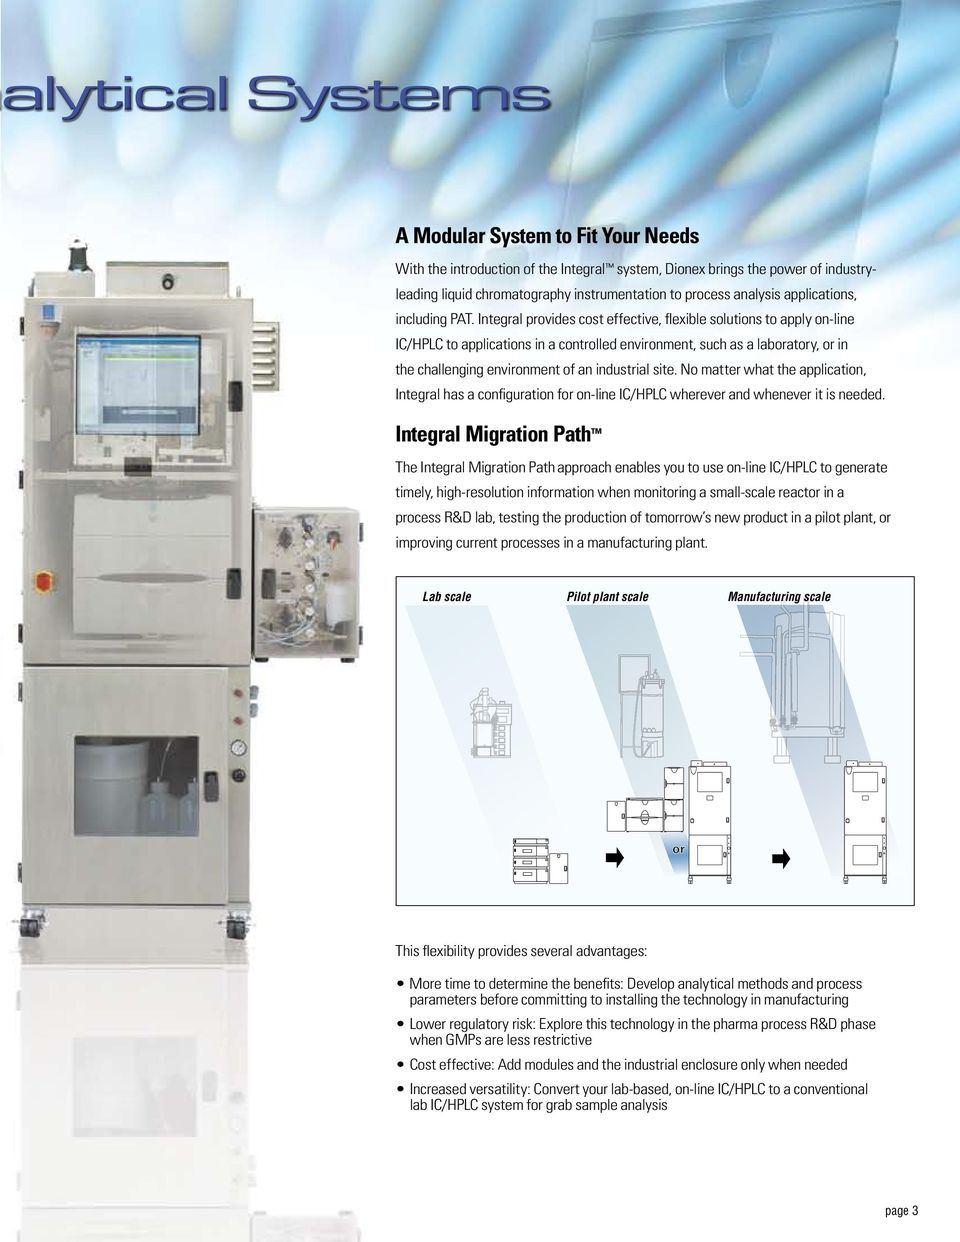 Integral provides cost effective, flexible solutions to apply on-line IC/HPLC to applications in a controlled environment, such as a laboratory, or in the challenging environment of an industrial